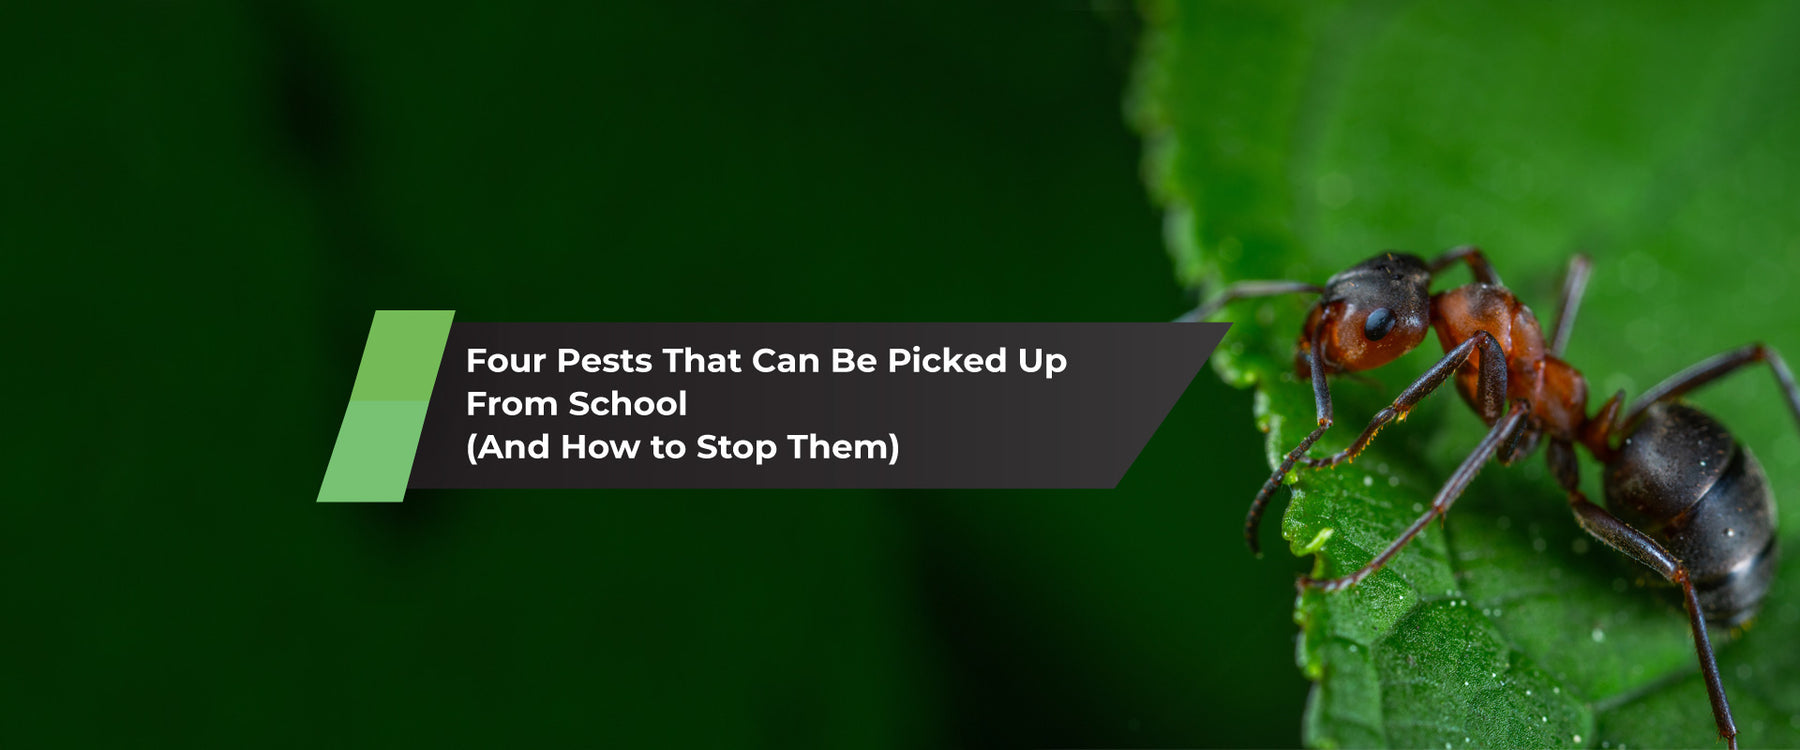 Four Pests That Can Be Picked Up From School (And How to Stop Them)